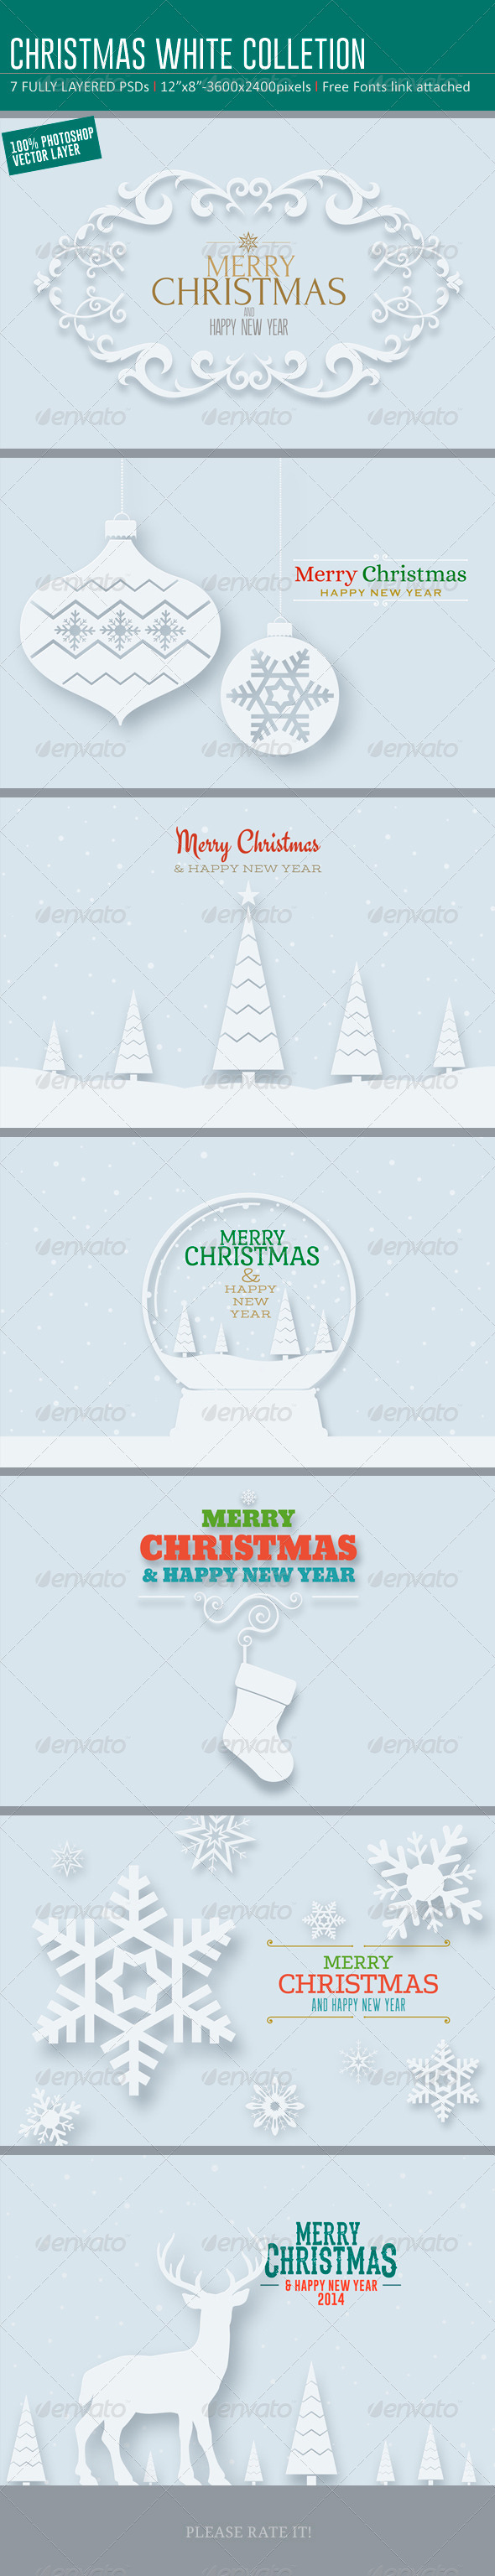 Christmas White Backgrounds- Card Colletions - Backgrounds Graphics